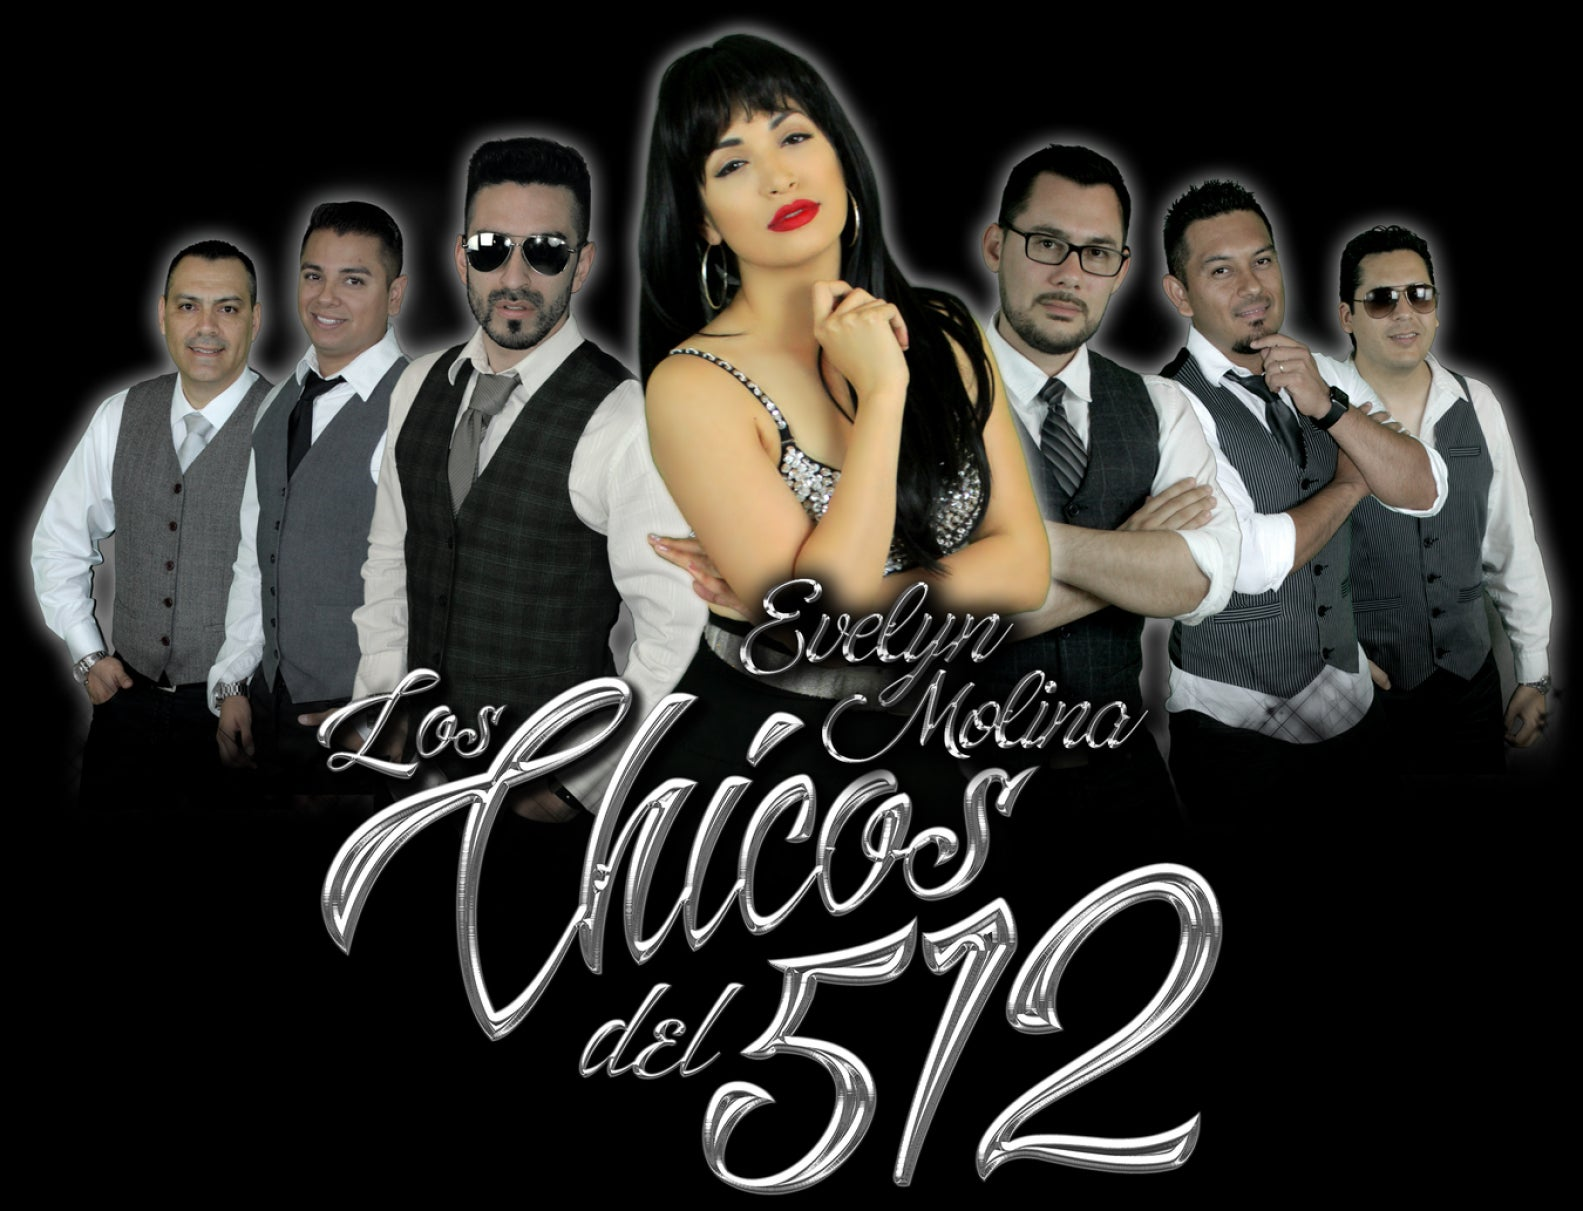 POSTPONED - Los Chicos Del 512 The Selena Experience